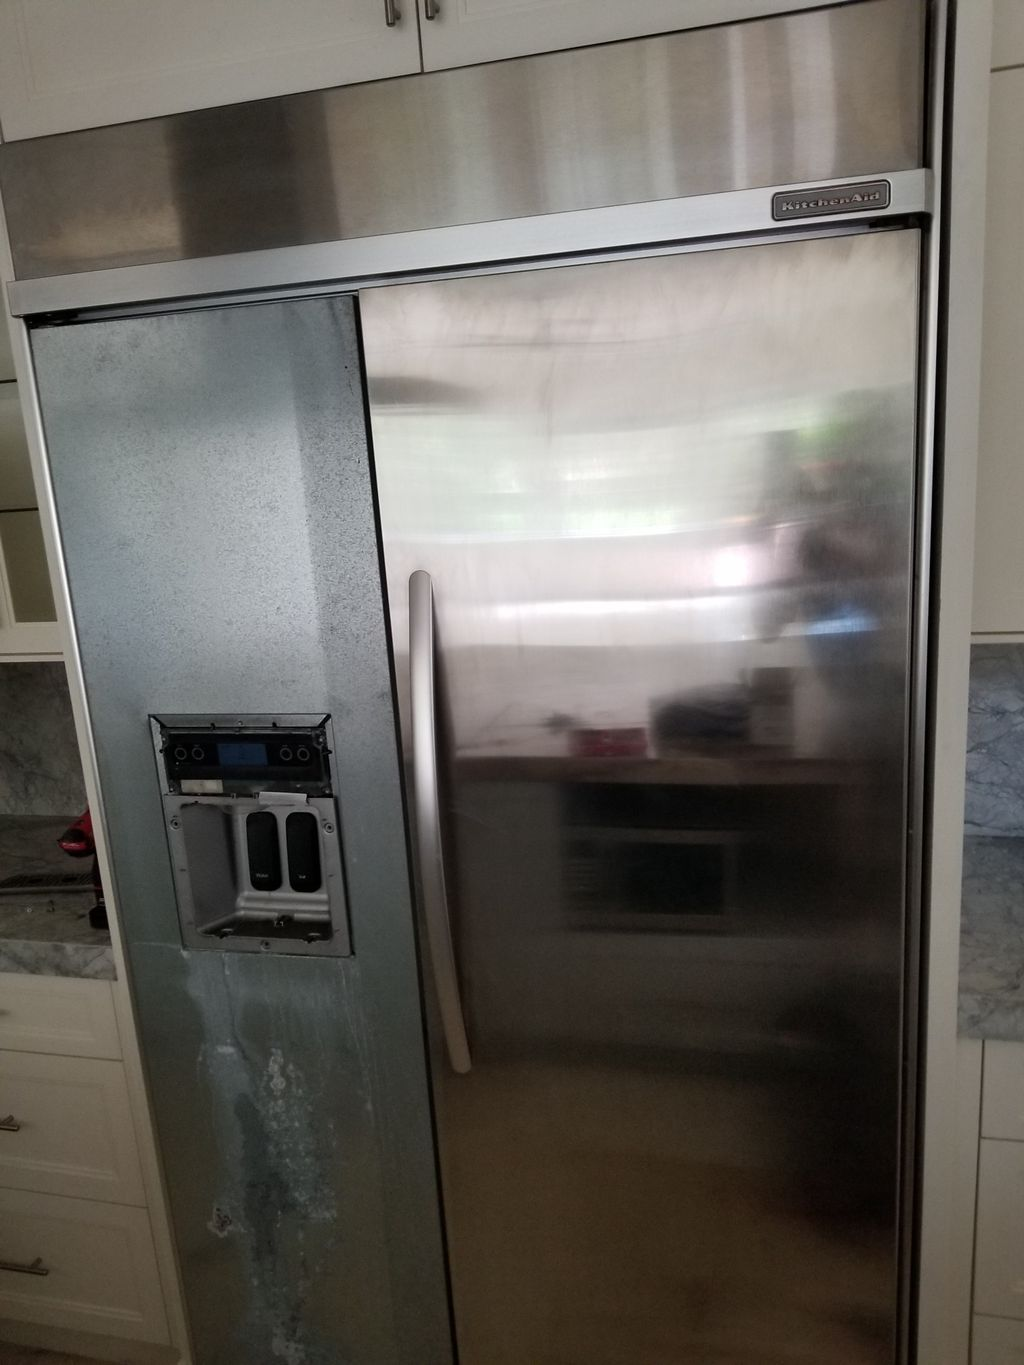 Buitl in kitchenaid fridge water and ice dispencer change out